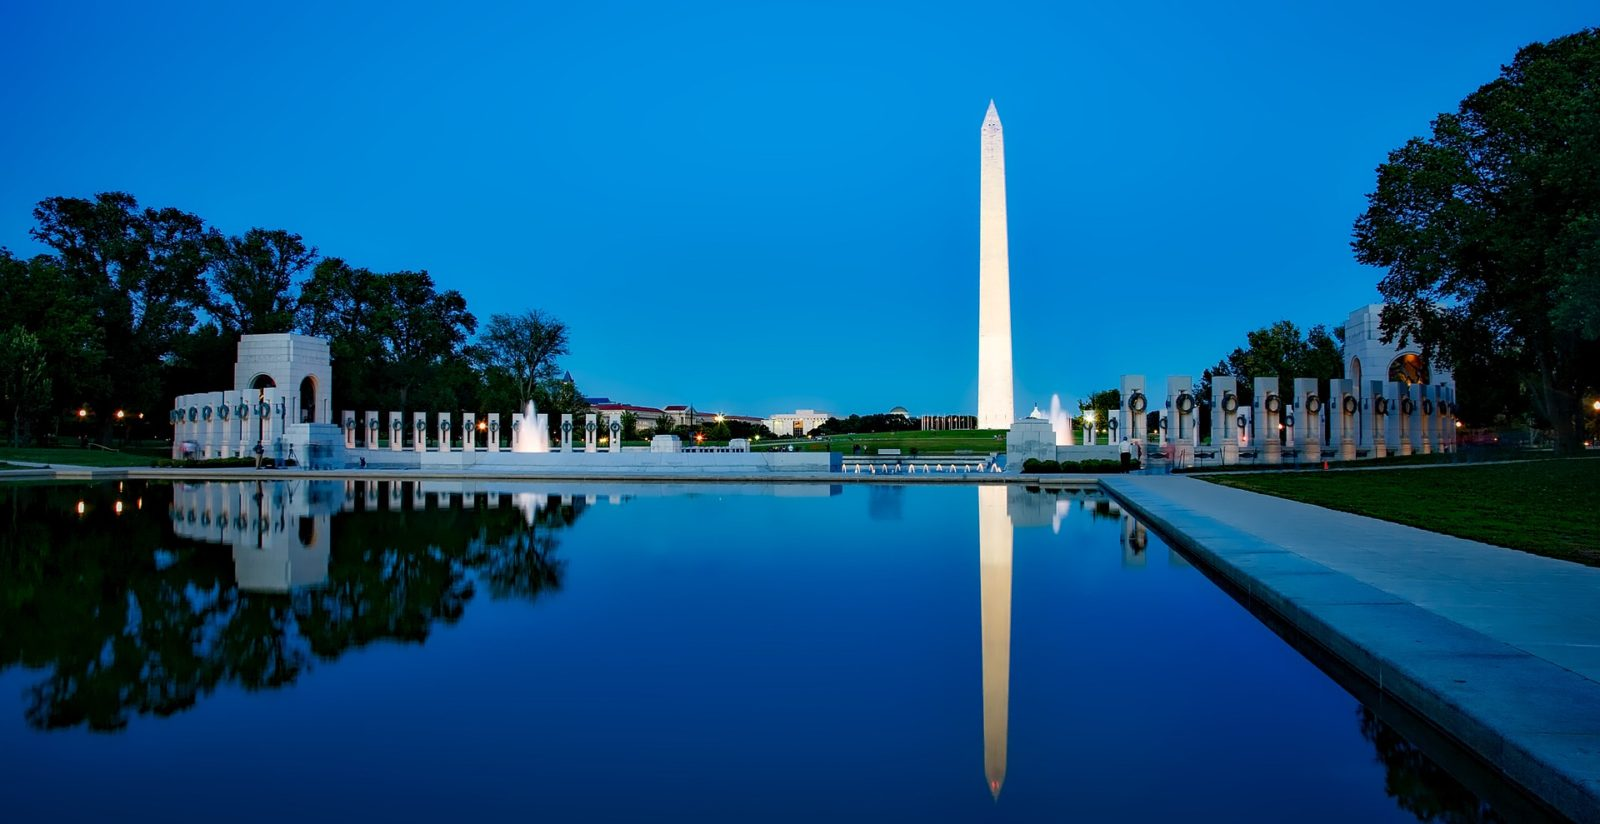 Top Attractions And Things To Do In Washington, D.C.